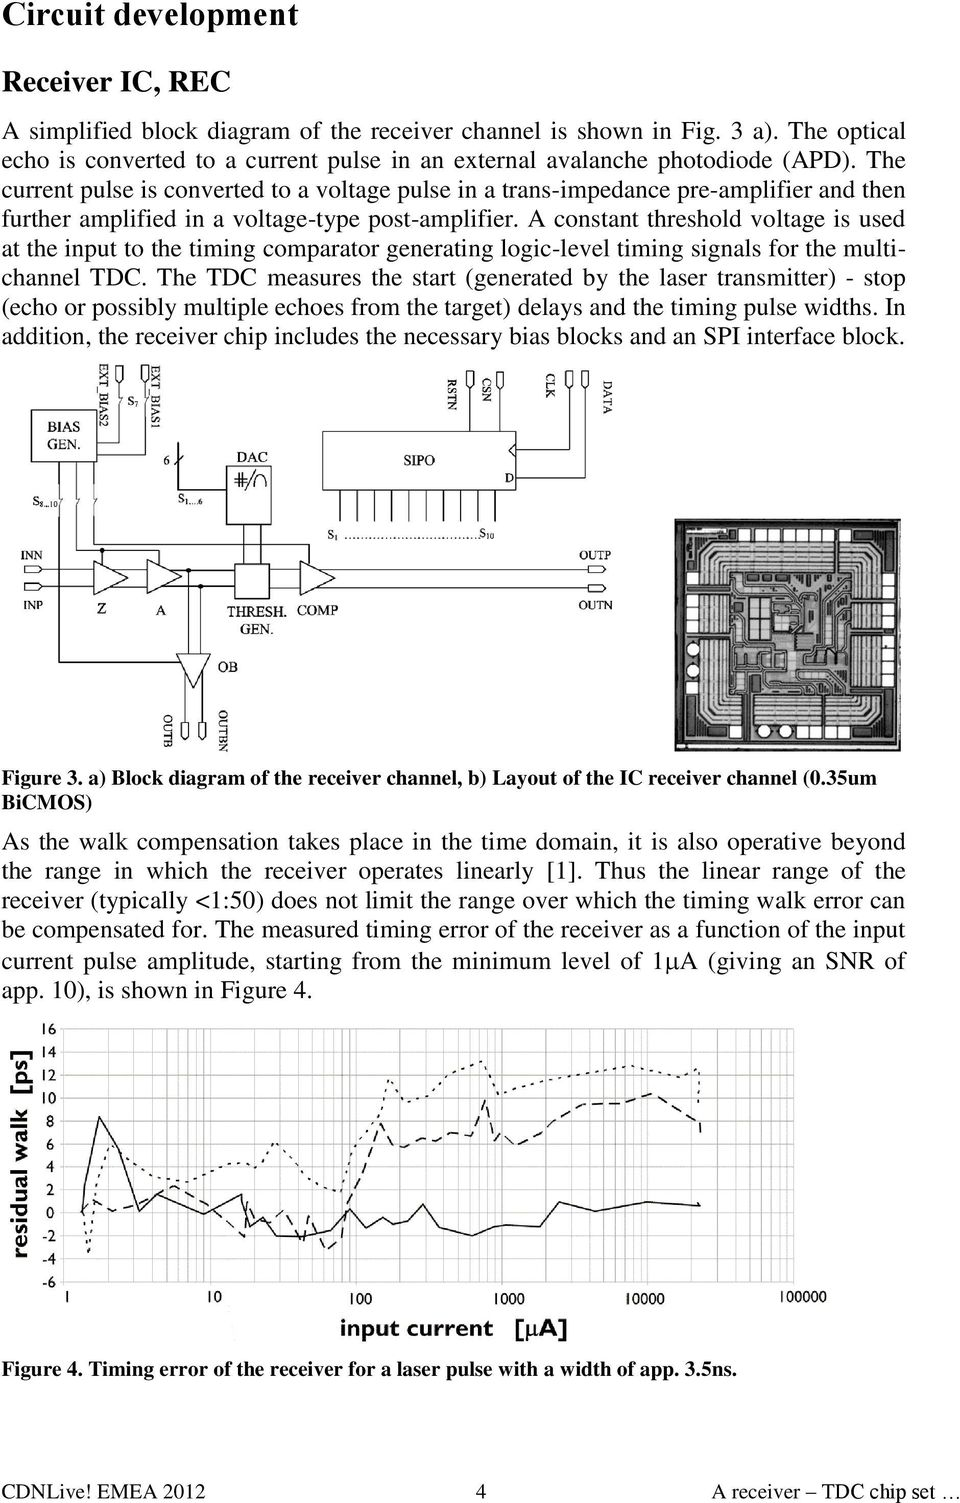 A Receiver Tdc Chip Set For Accurate Pulsed Time Of Flight Laser The Figure Below Shows Pir325 Electricalspecifications And Layout Current Pulse Is Converted To Voltage In Trans Impedance Pre